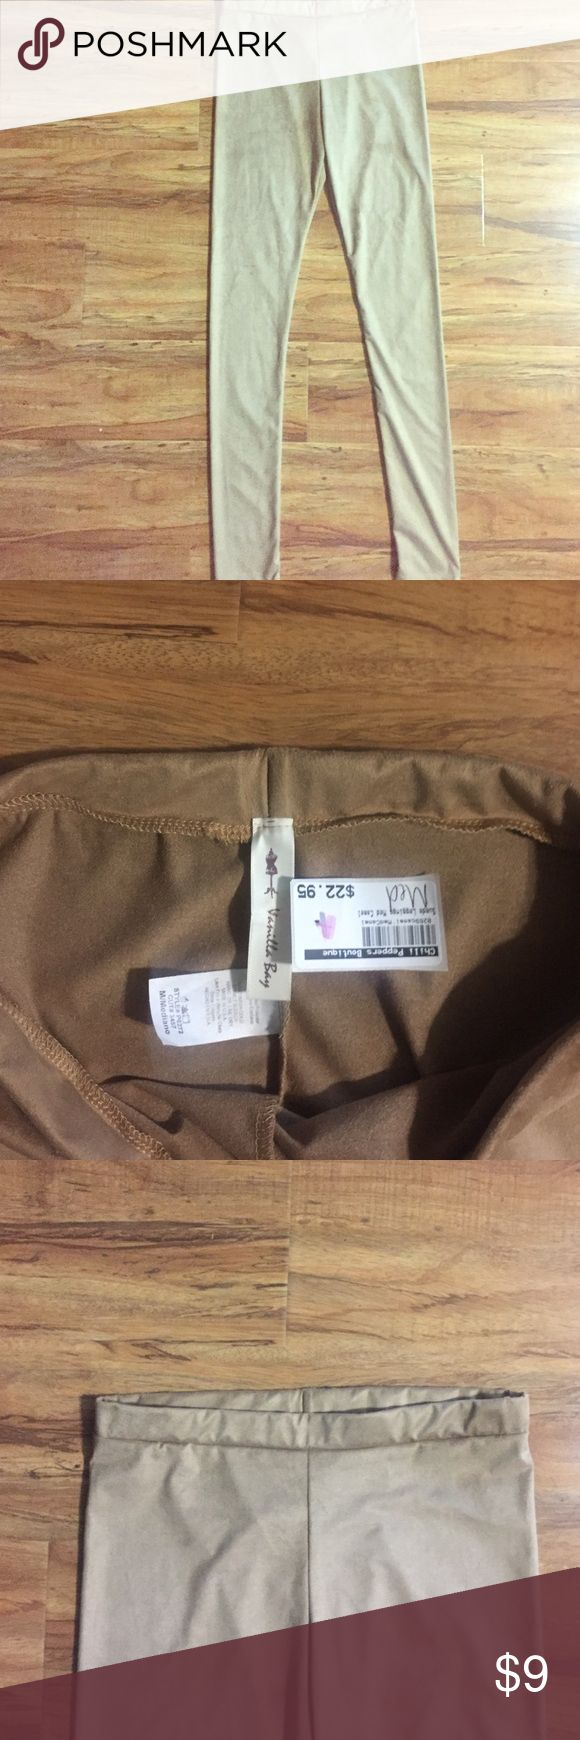 *NWT* Velvety Soft Suede Camel Leggings! Pair these unique beauties with any tunic or mini-dress to spice leggings up a notch!!! Suede-soft & velvety! Camel/tan neutral color goes with anything! Throw on some knee boots, cowboy boots, sandal or heel! DONE!👌🏼 *Boutique Unique* Vanilla Bay Pants Leggings